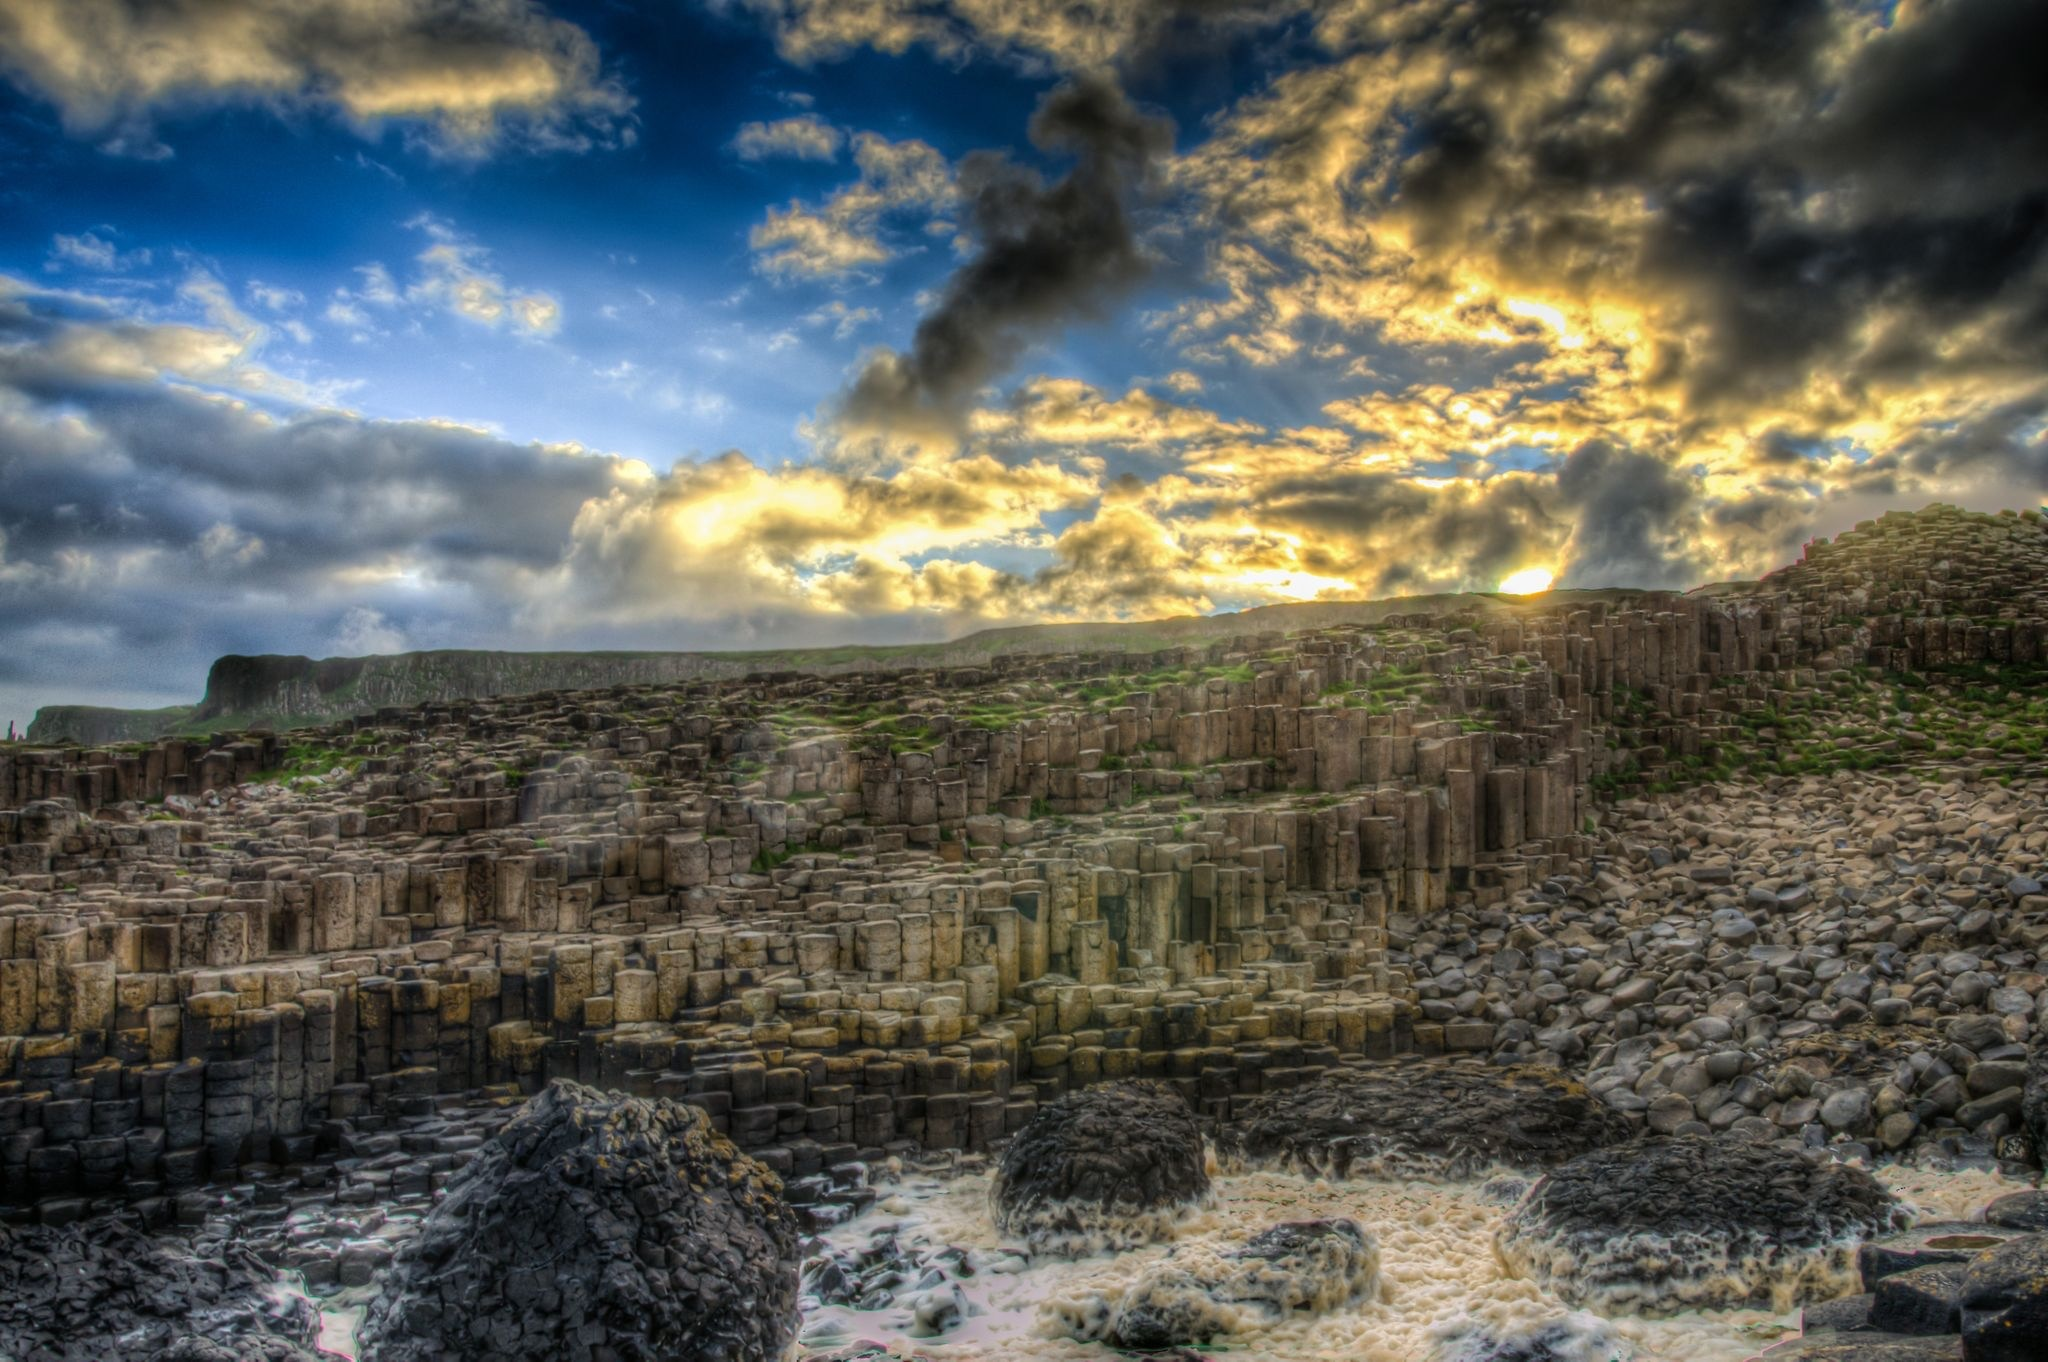 A Private Viewing of the Giant's Causeway